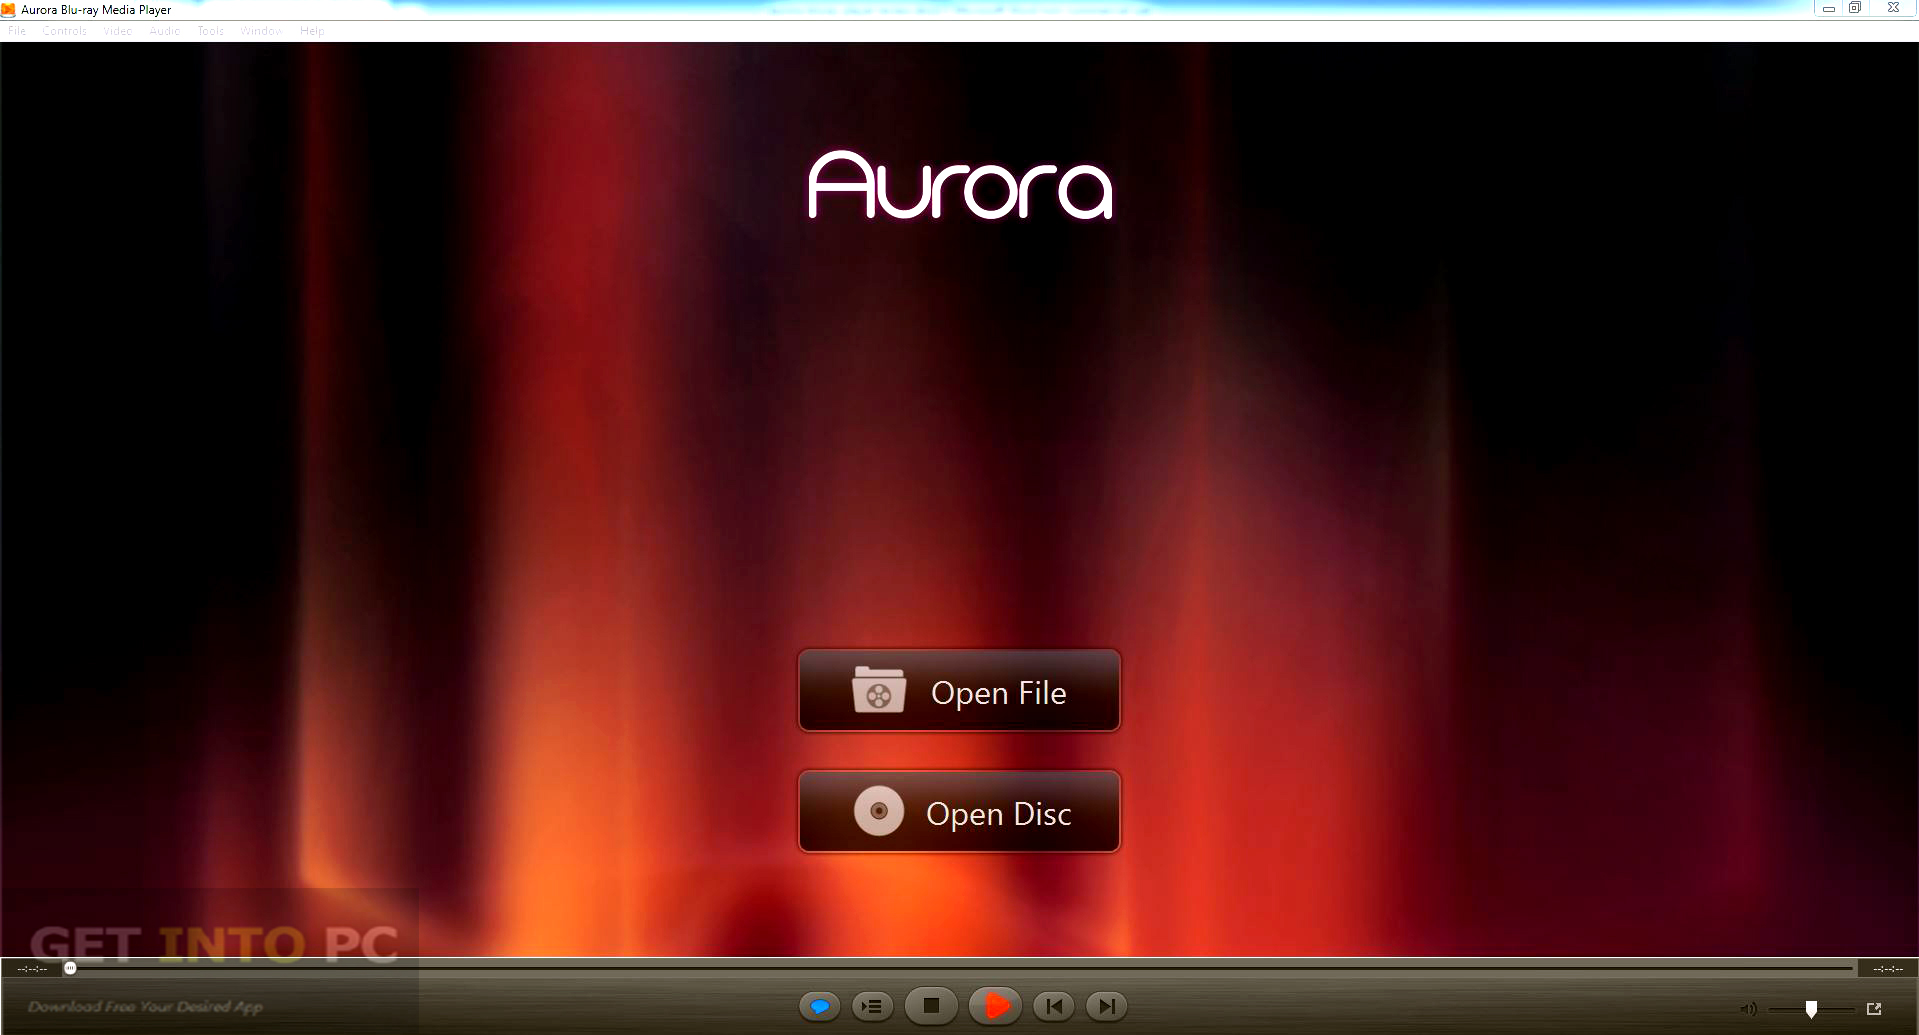 Aurora Blu-ray Media Player Latest Version Download